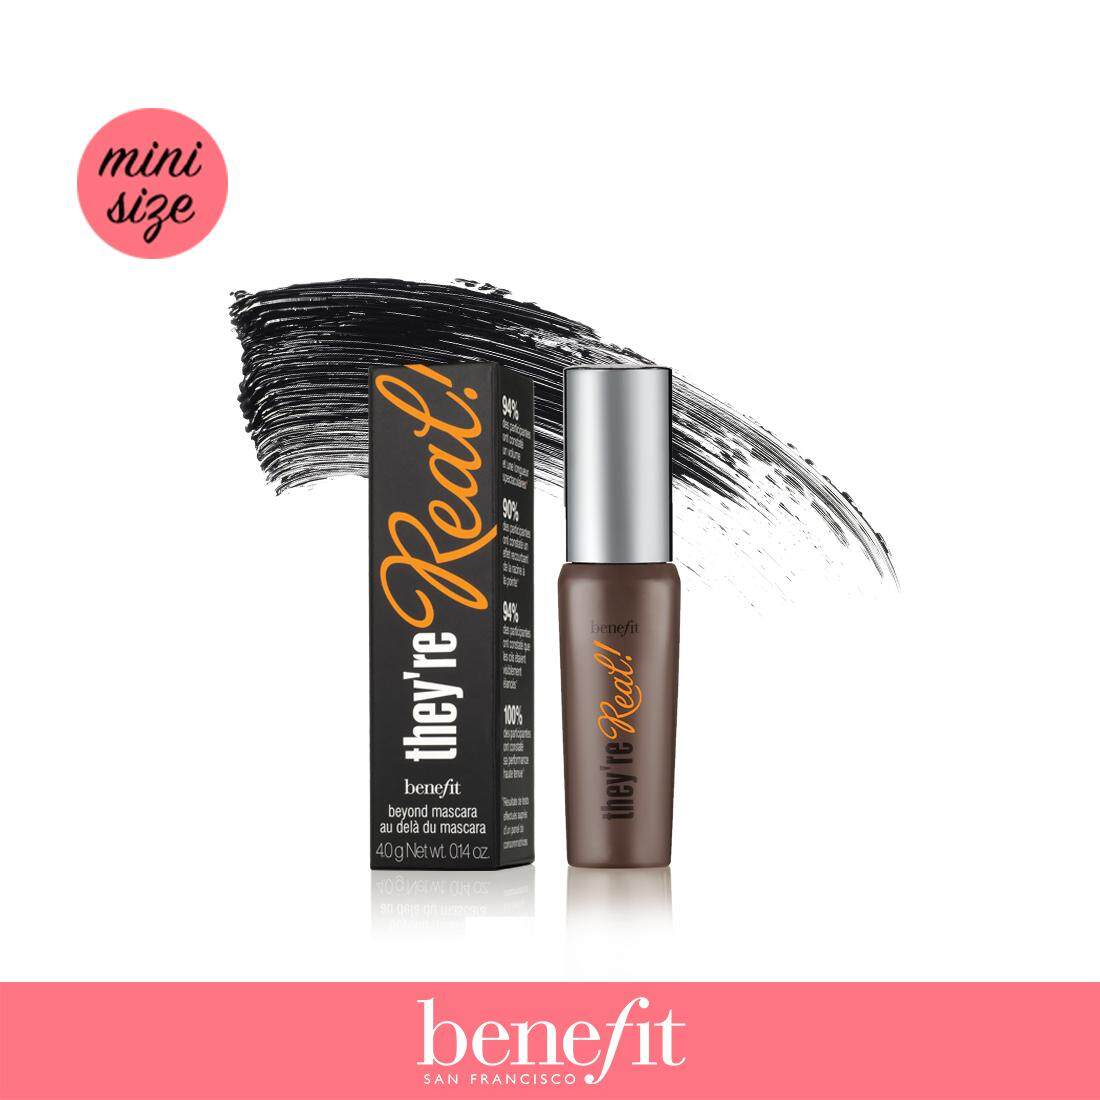 3d025e18539 Benefit - Buy Benefit at Best Price in Malaysia | www.lazada.com.my